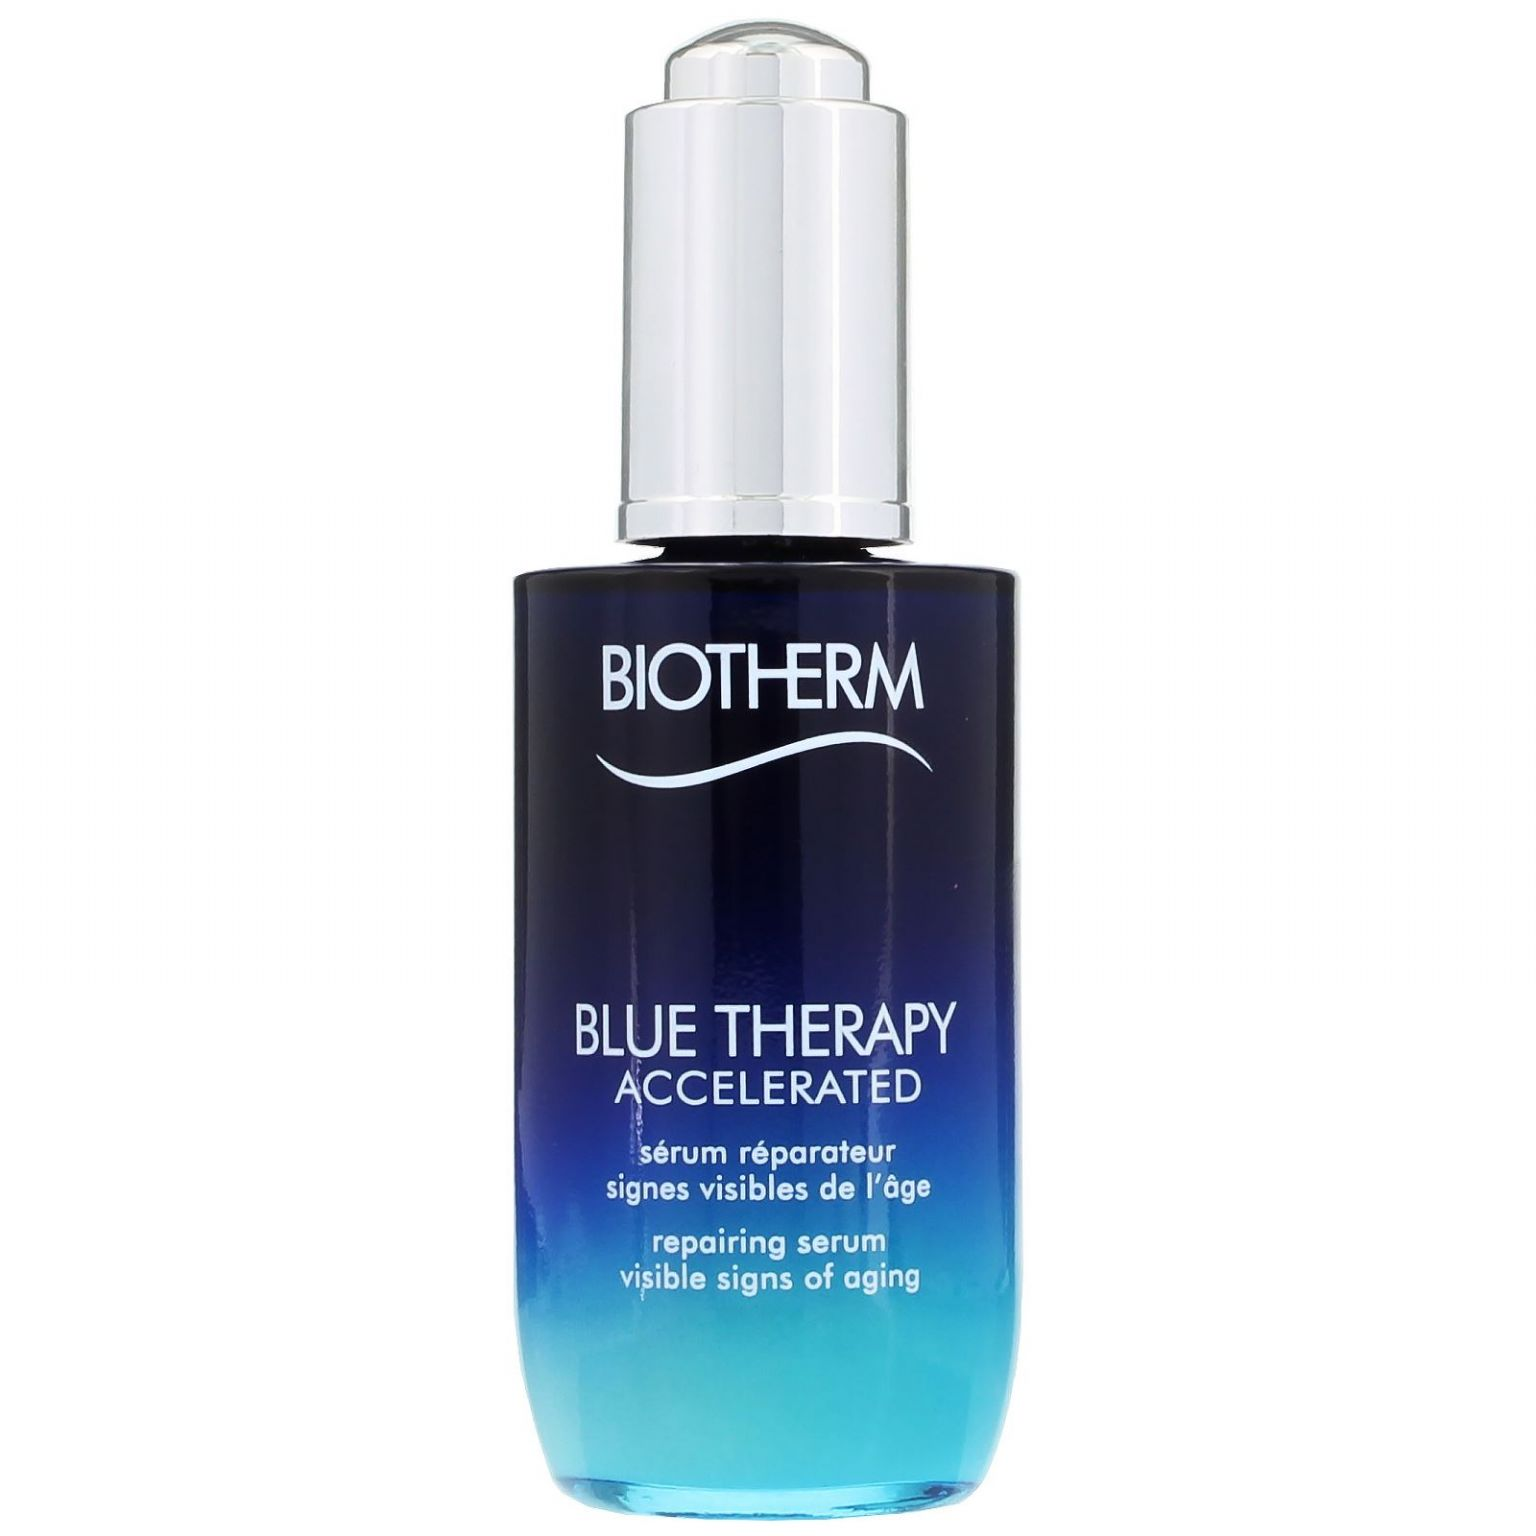 Blue Therapy Acclerated Serum